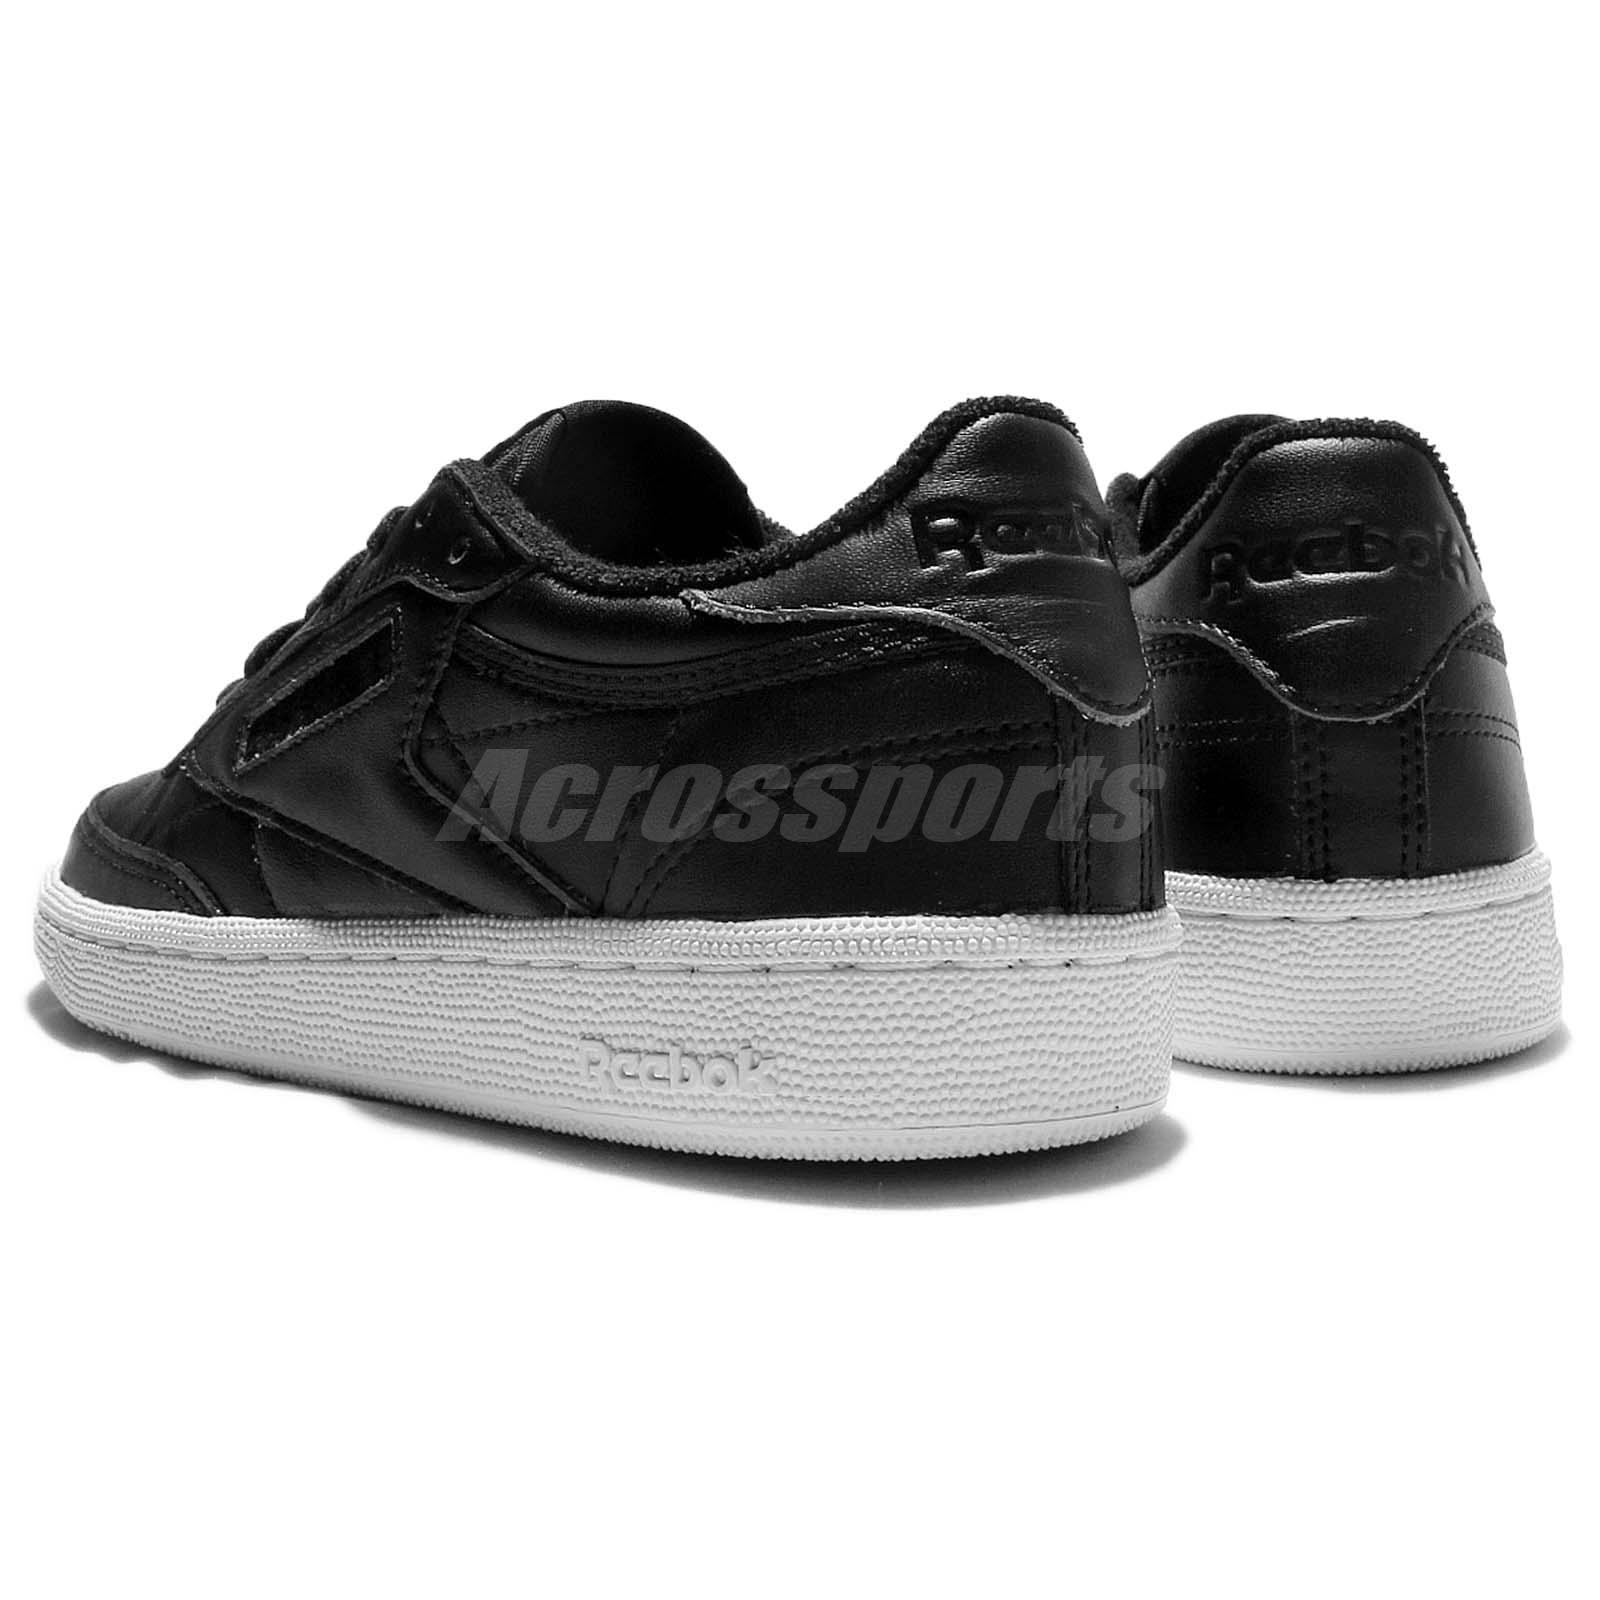 reebok club c 85 leather black white womens casual shoes